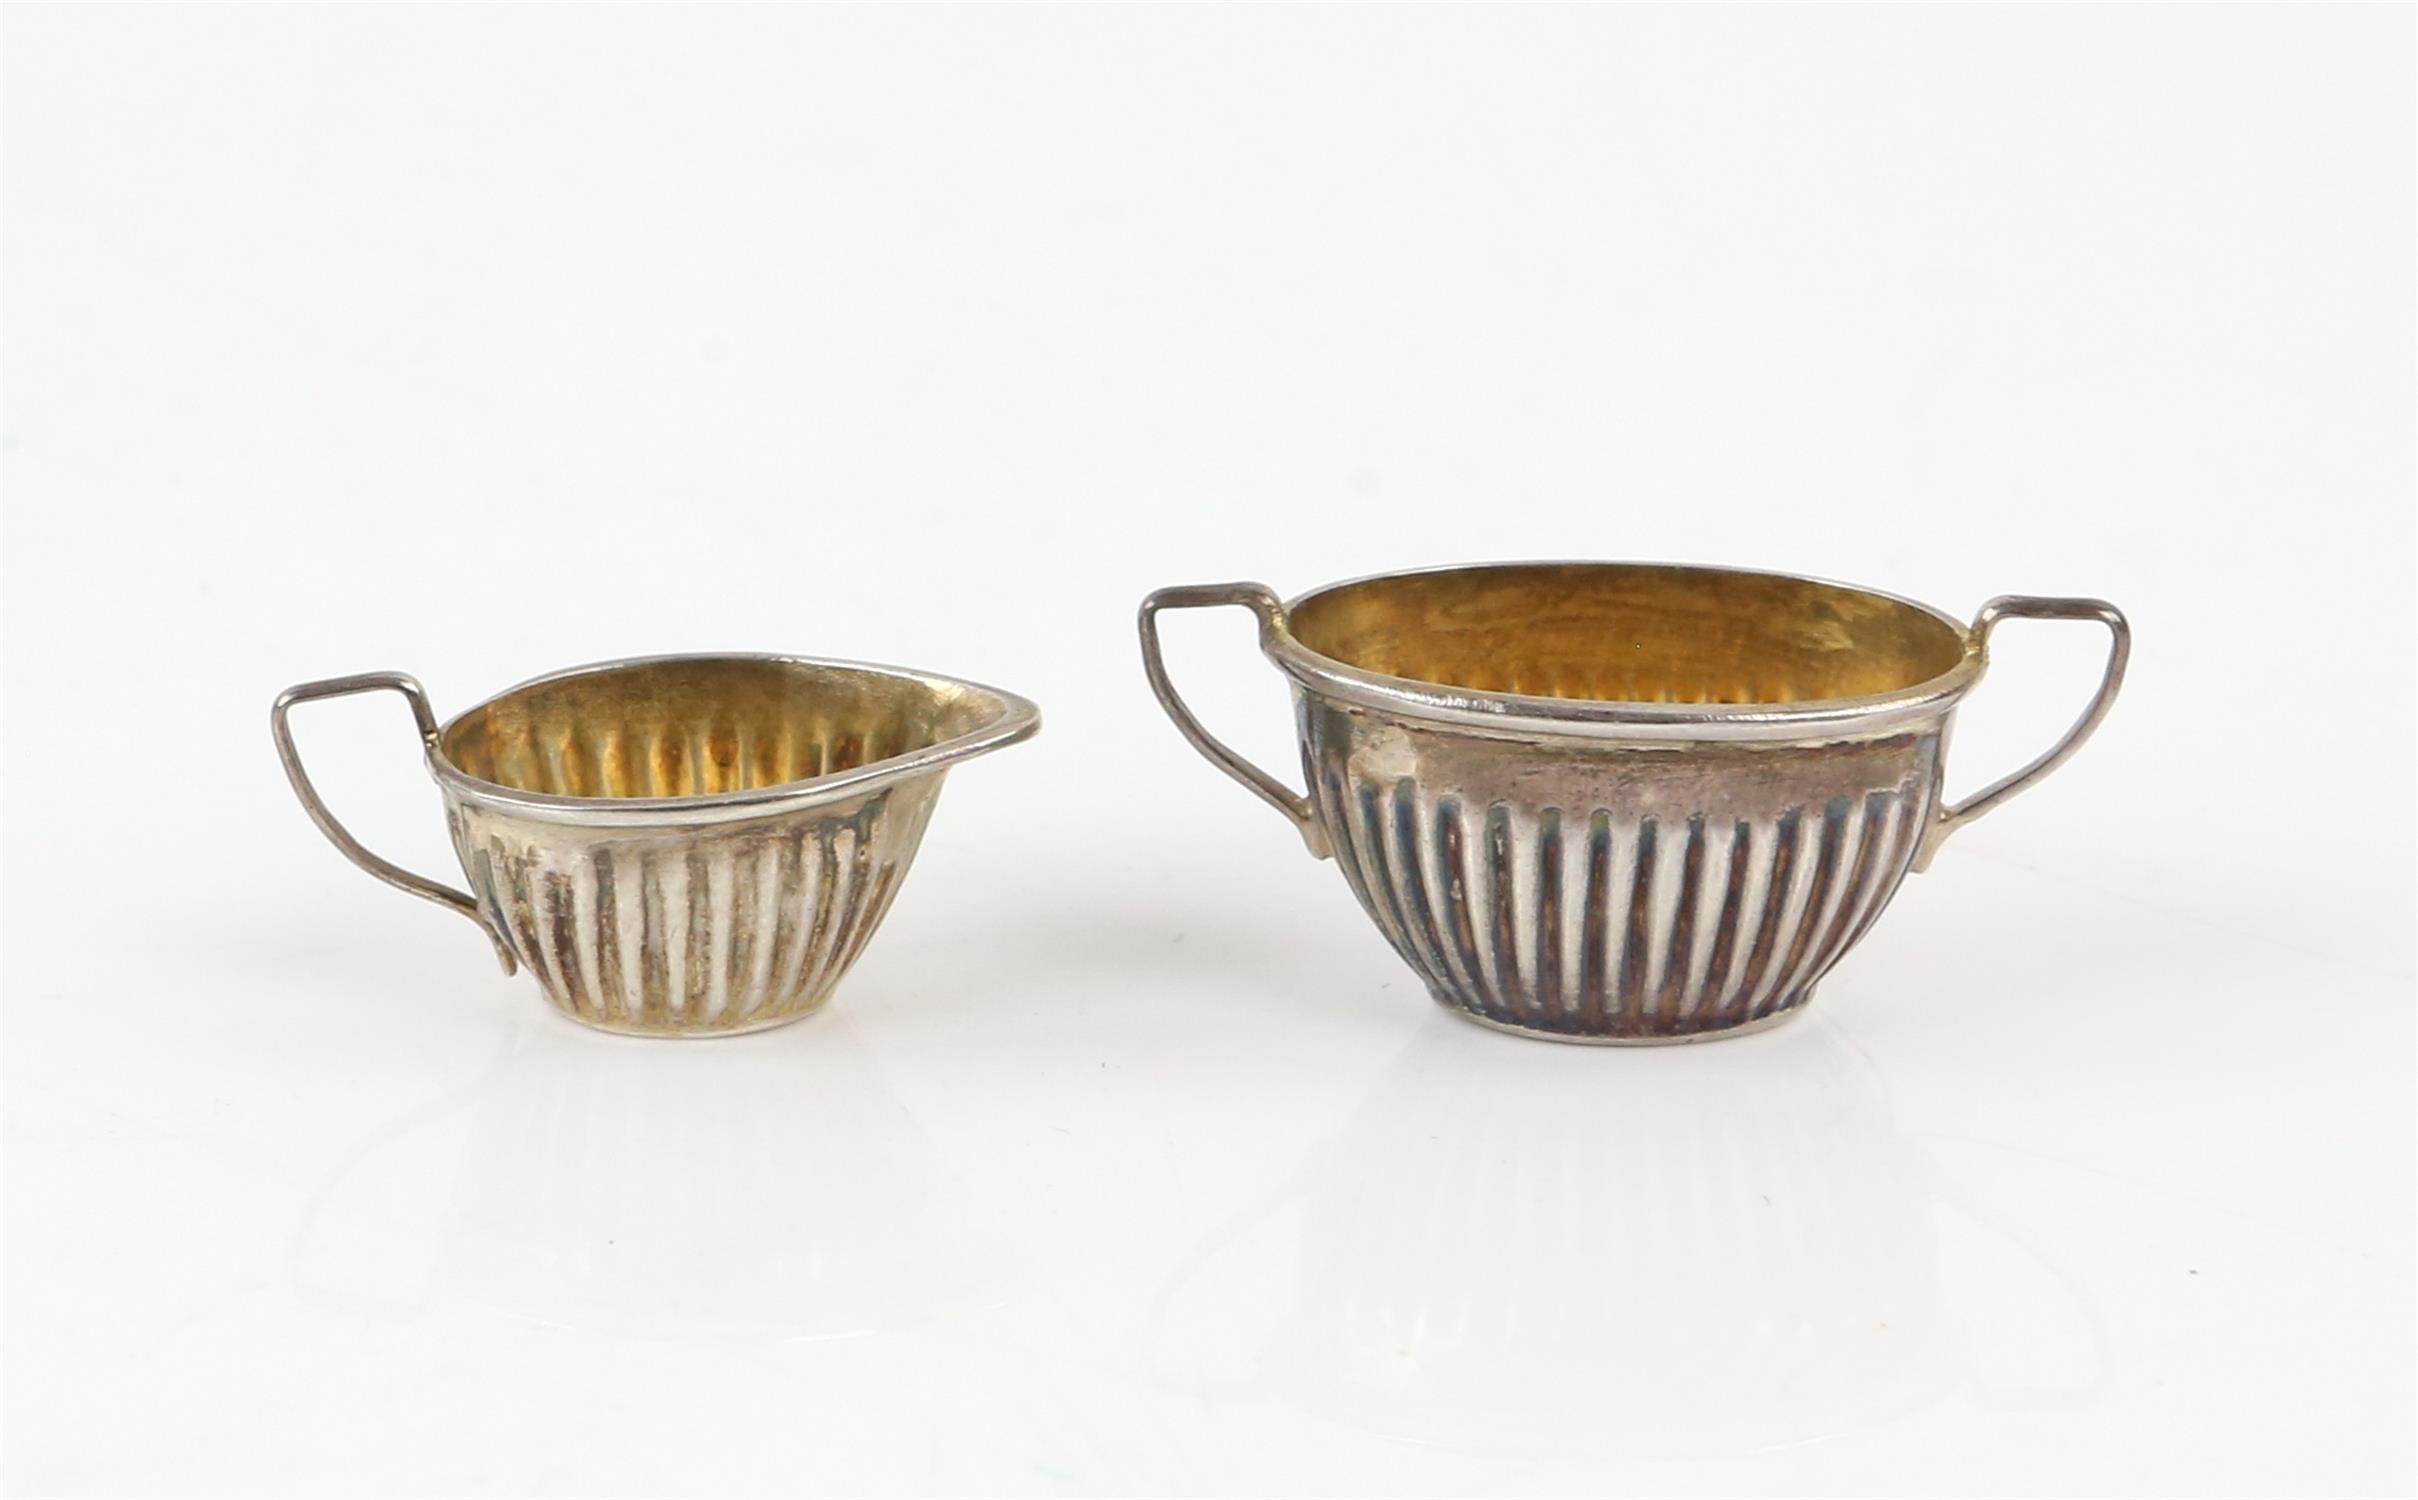 Pair of oval pierced silver bon-bon dishes, by Robert Pringle & Sons London 1927, - Image 11 of 11